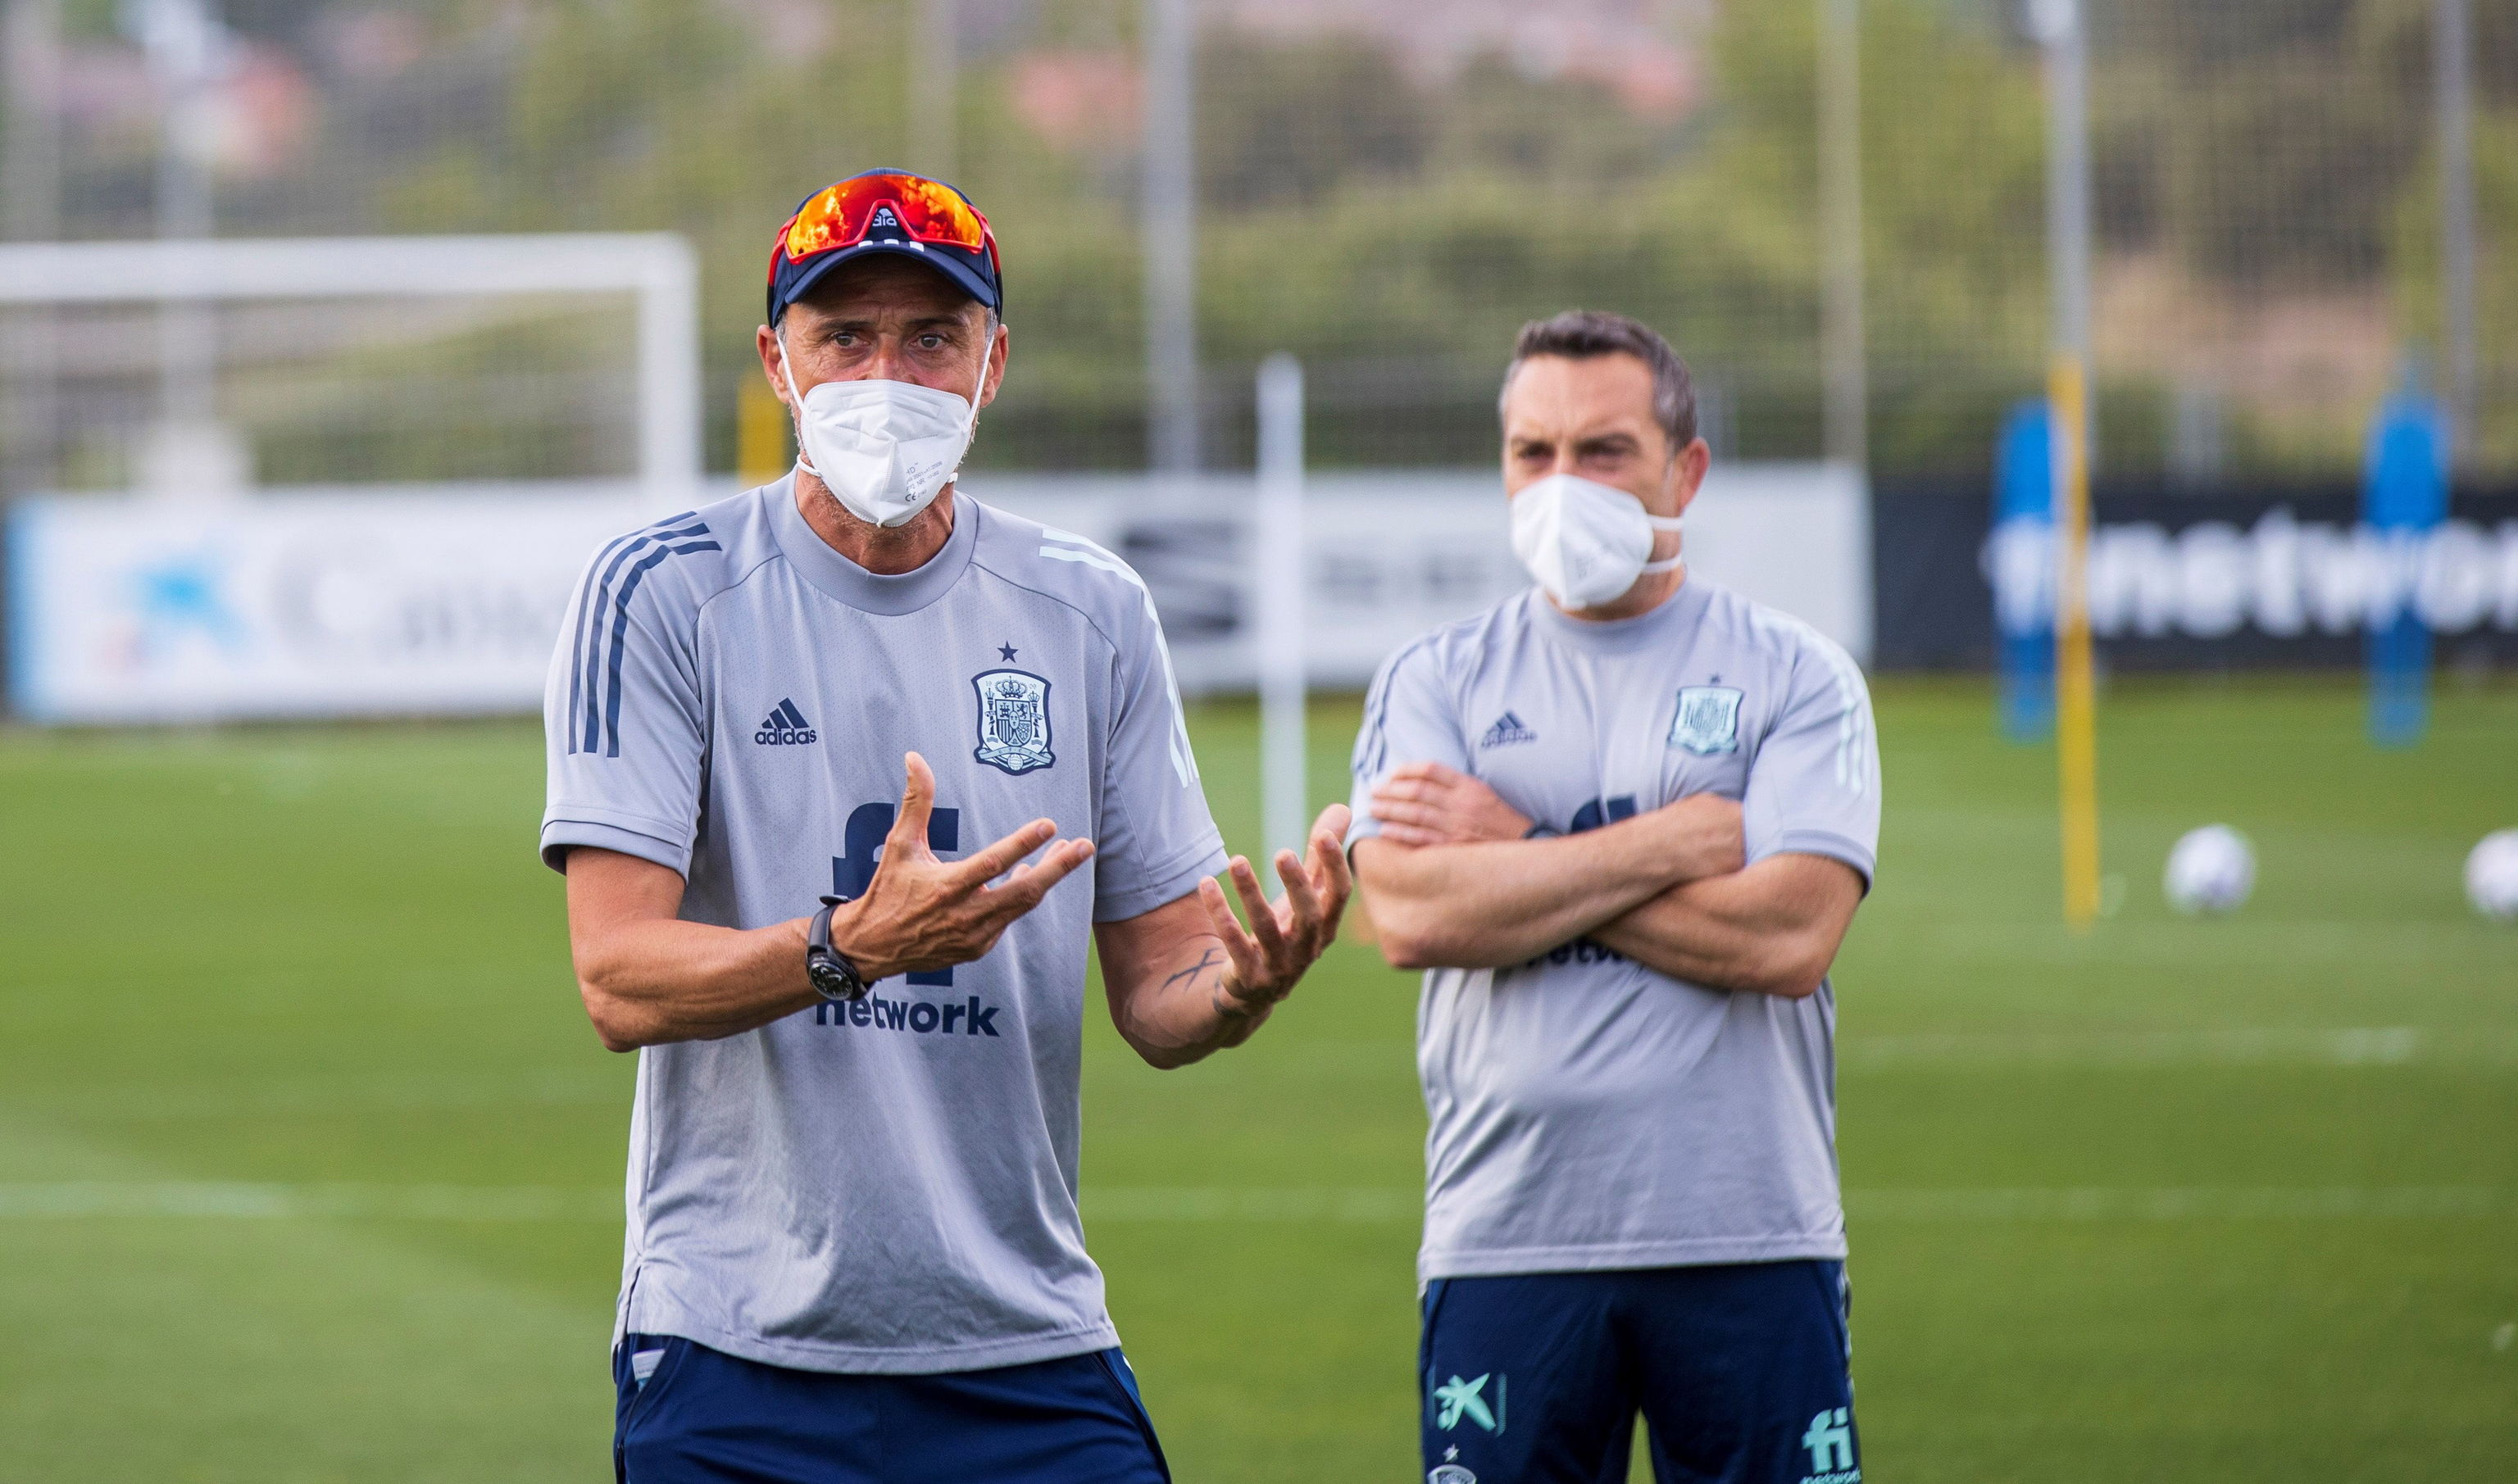 Luis Enrique, during a training session with the national team